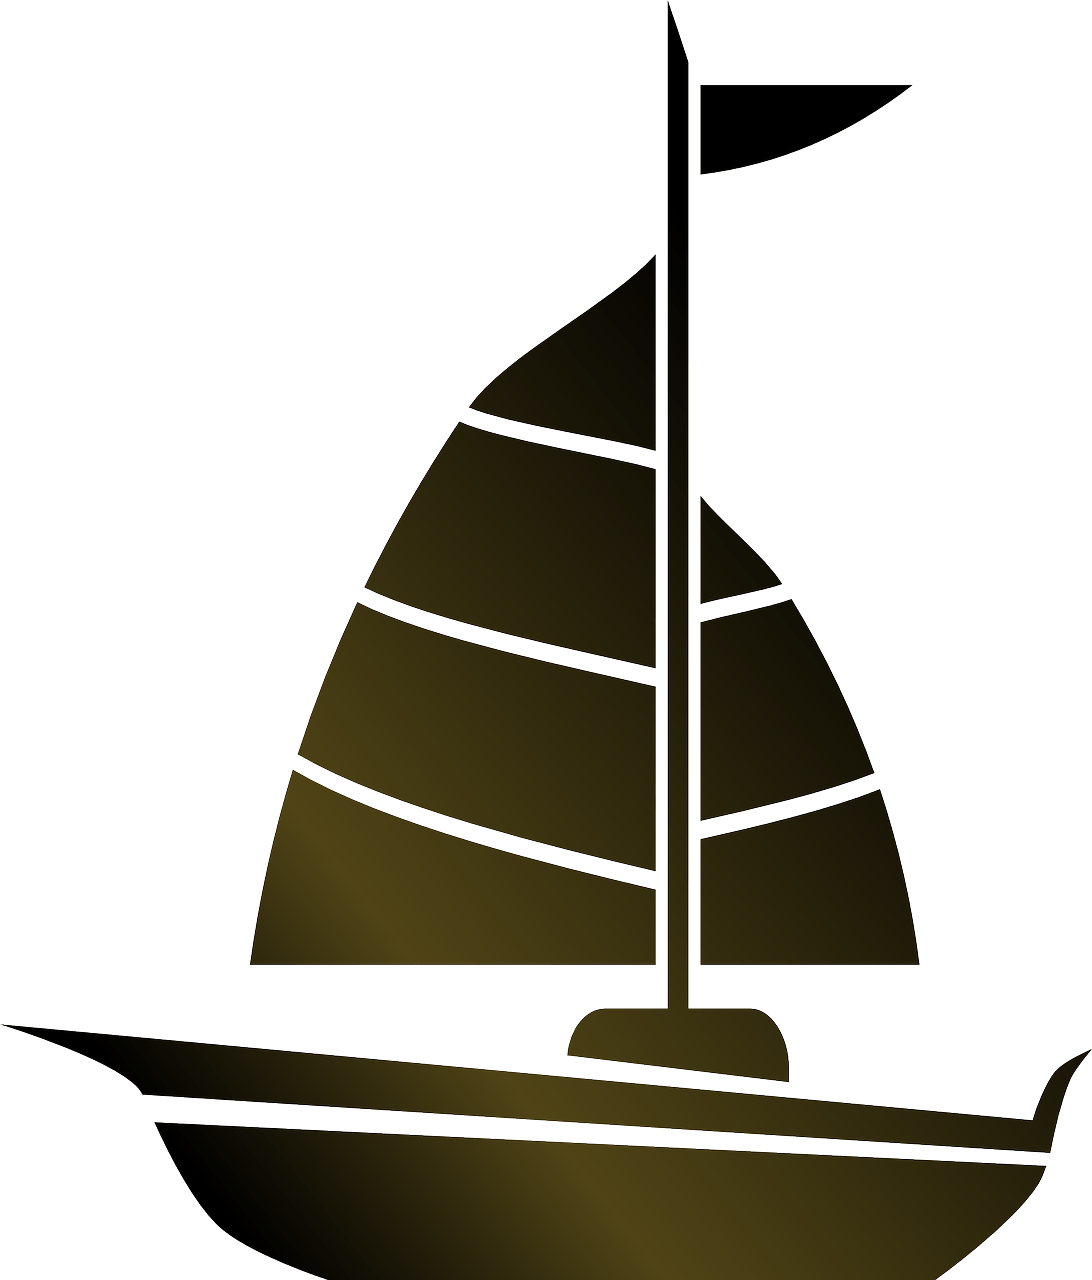 How To Draw A Boat 14 Free Printable Boat Stencils HOW TO DRAW In 1 Minute